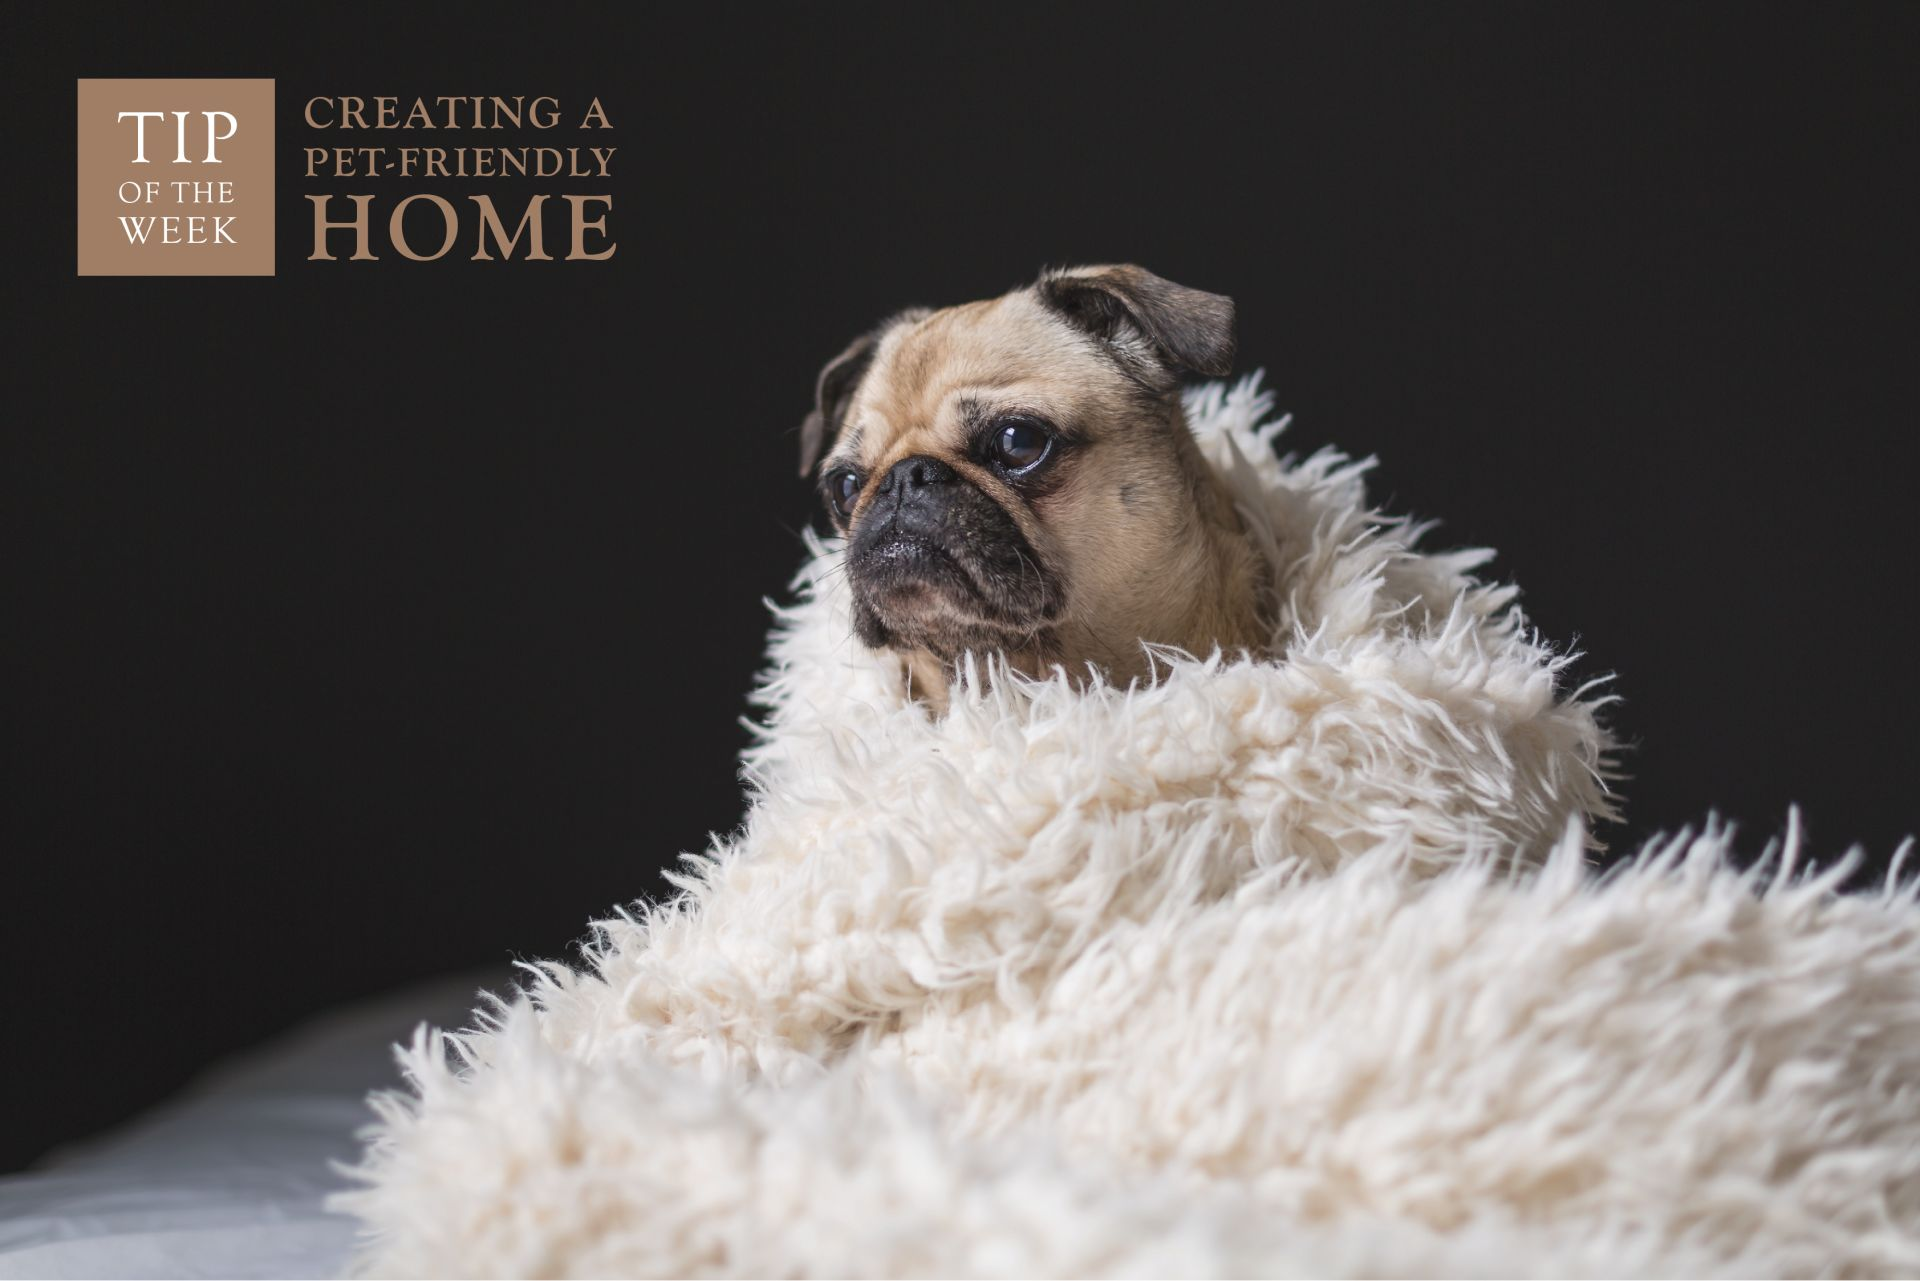 Creating a Pet-Friendly Home